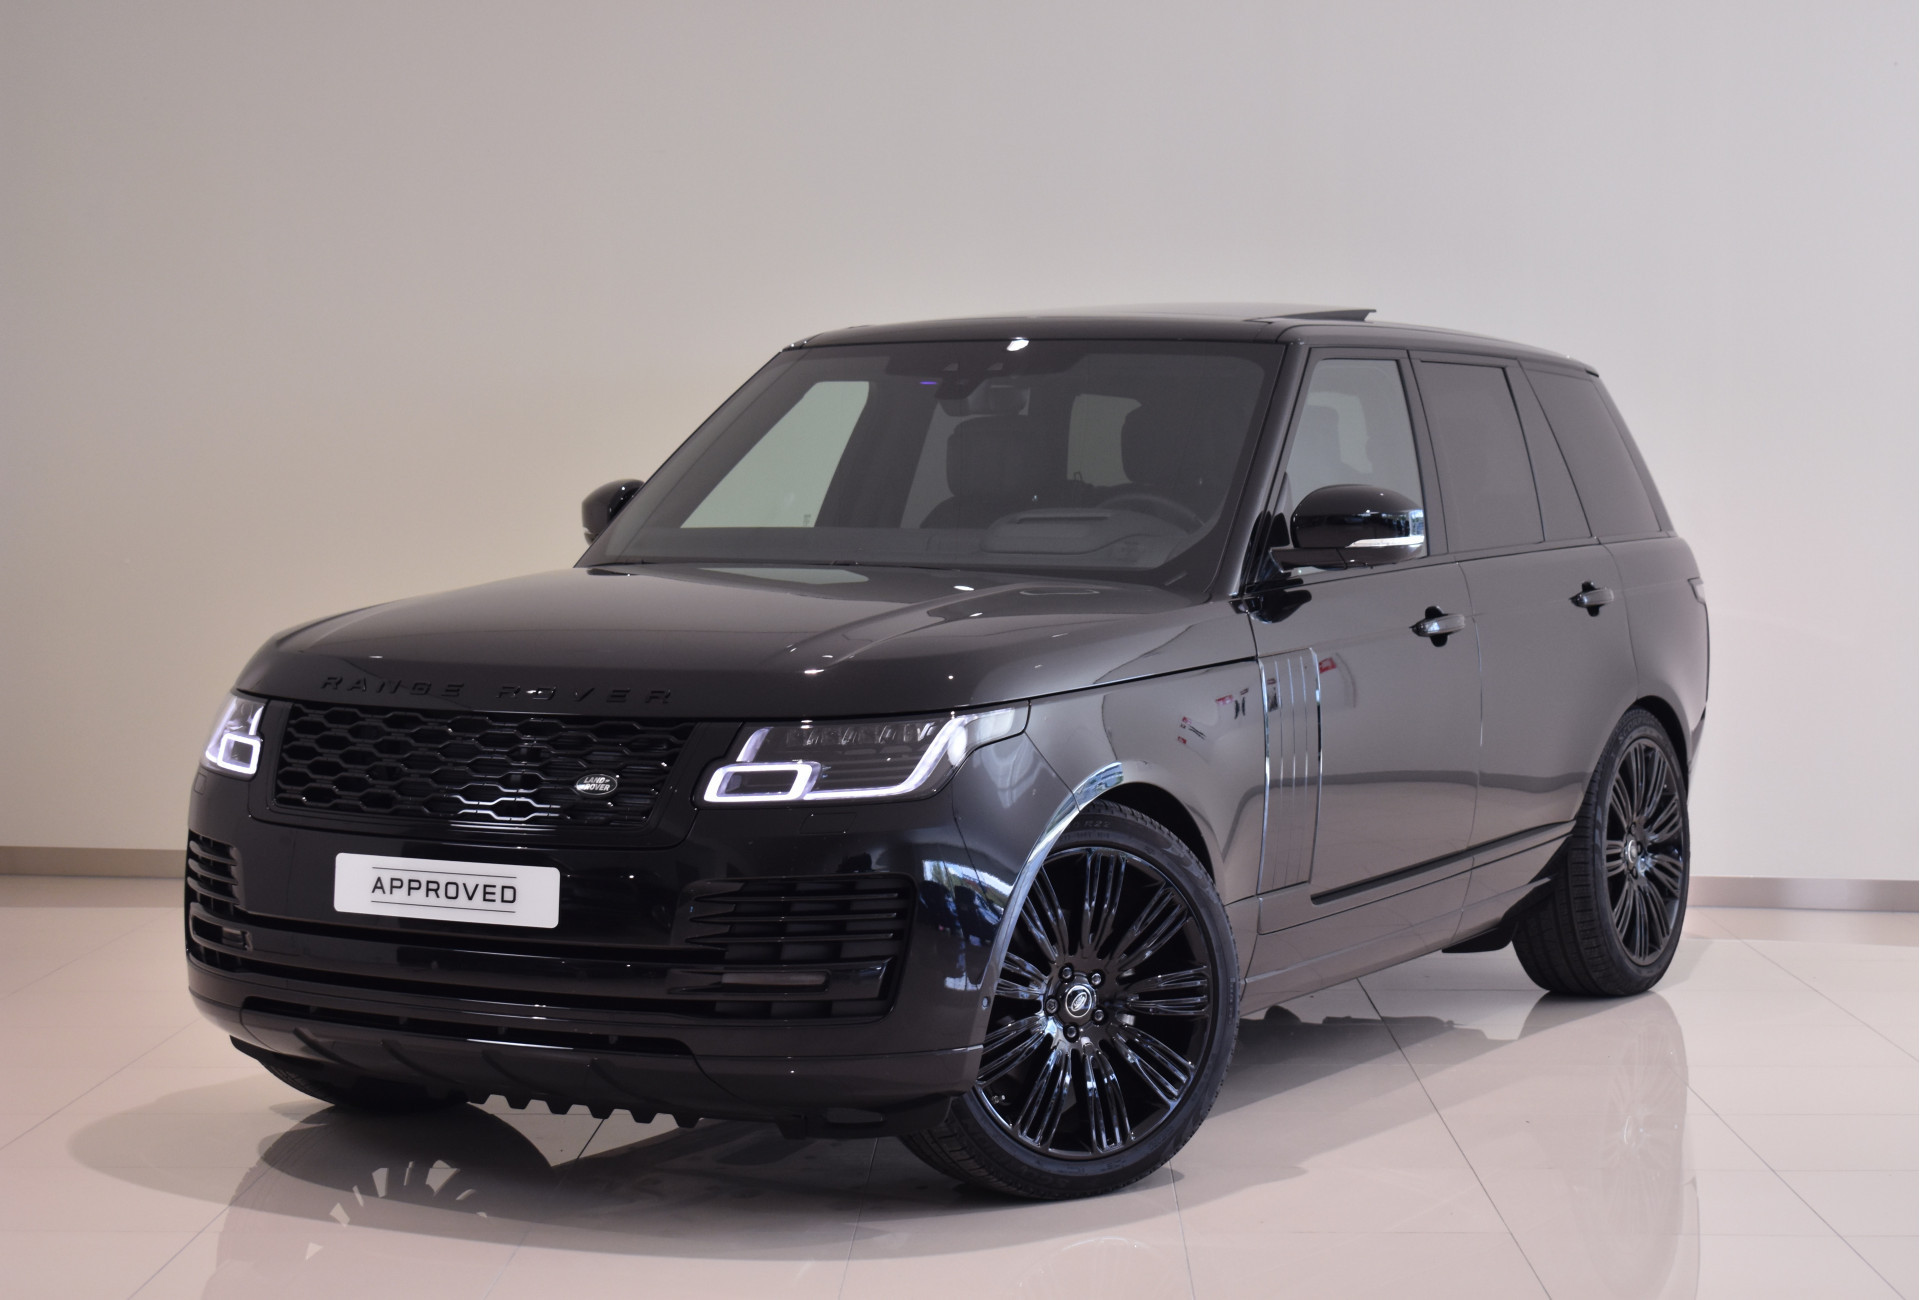 Land Rover Range Rover 3.0 SDV6 Autobiography - Afbeelding 1